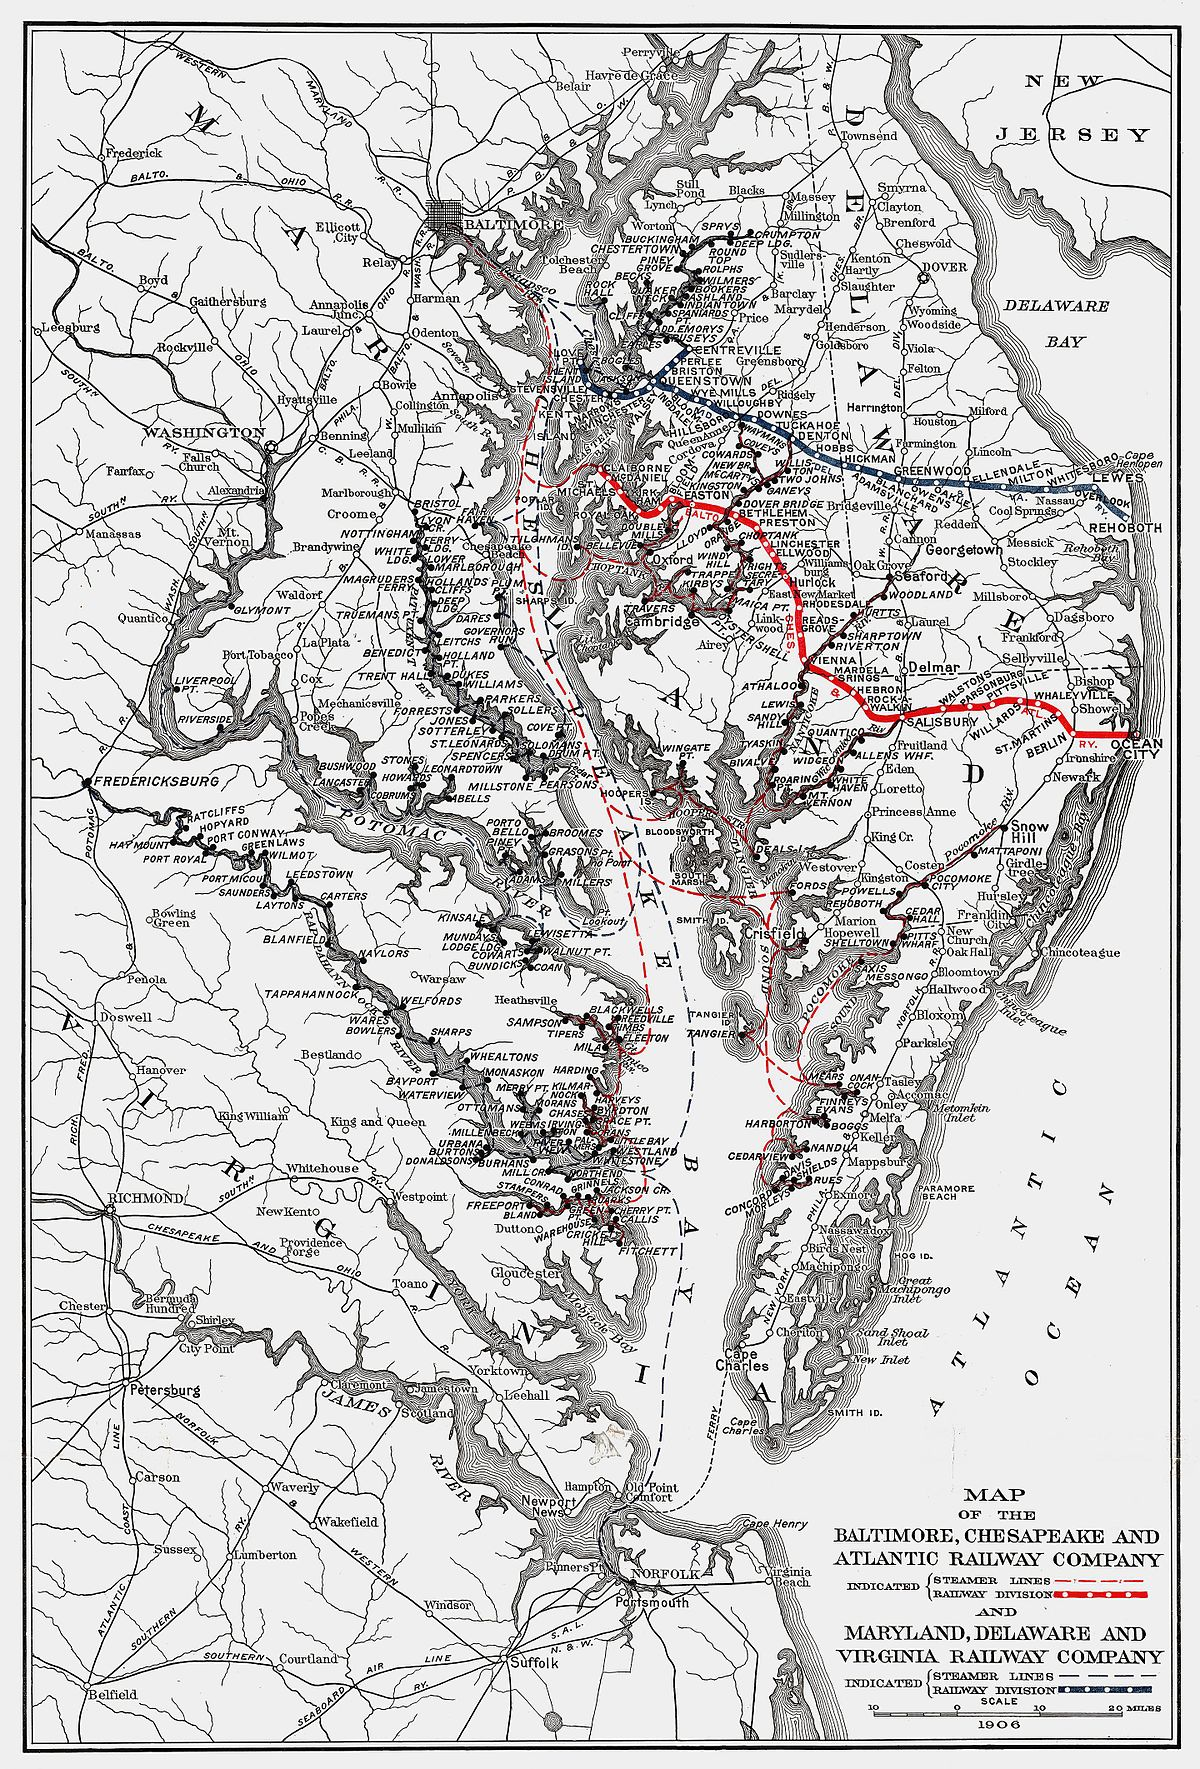 Baltimore, Chesapeake and Atlantic Railway - Wikipedia on chesapeake inn map, kent maryland map, chesapeake va neighborhood map, delaware city delaware map, jersey city nj map, bay bridge maryland map, chesapeake city wedding, city of chesapeake va map, chesapeake city md restaurants, chesapeake city md mapquest, chesapeake city md 21915, chesapeake zip code map, chesapeake maryland map, chesapeake bay map, cape cod canal pole map, california zip code map, chesapeake city md lodging, city of chesapeake virginia map, churchill maryland map, sandy point beach maryland map,